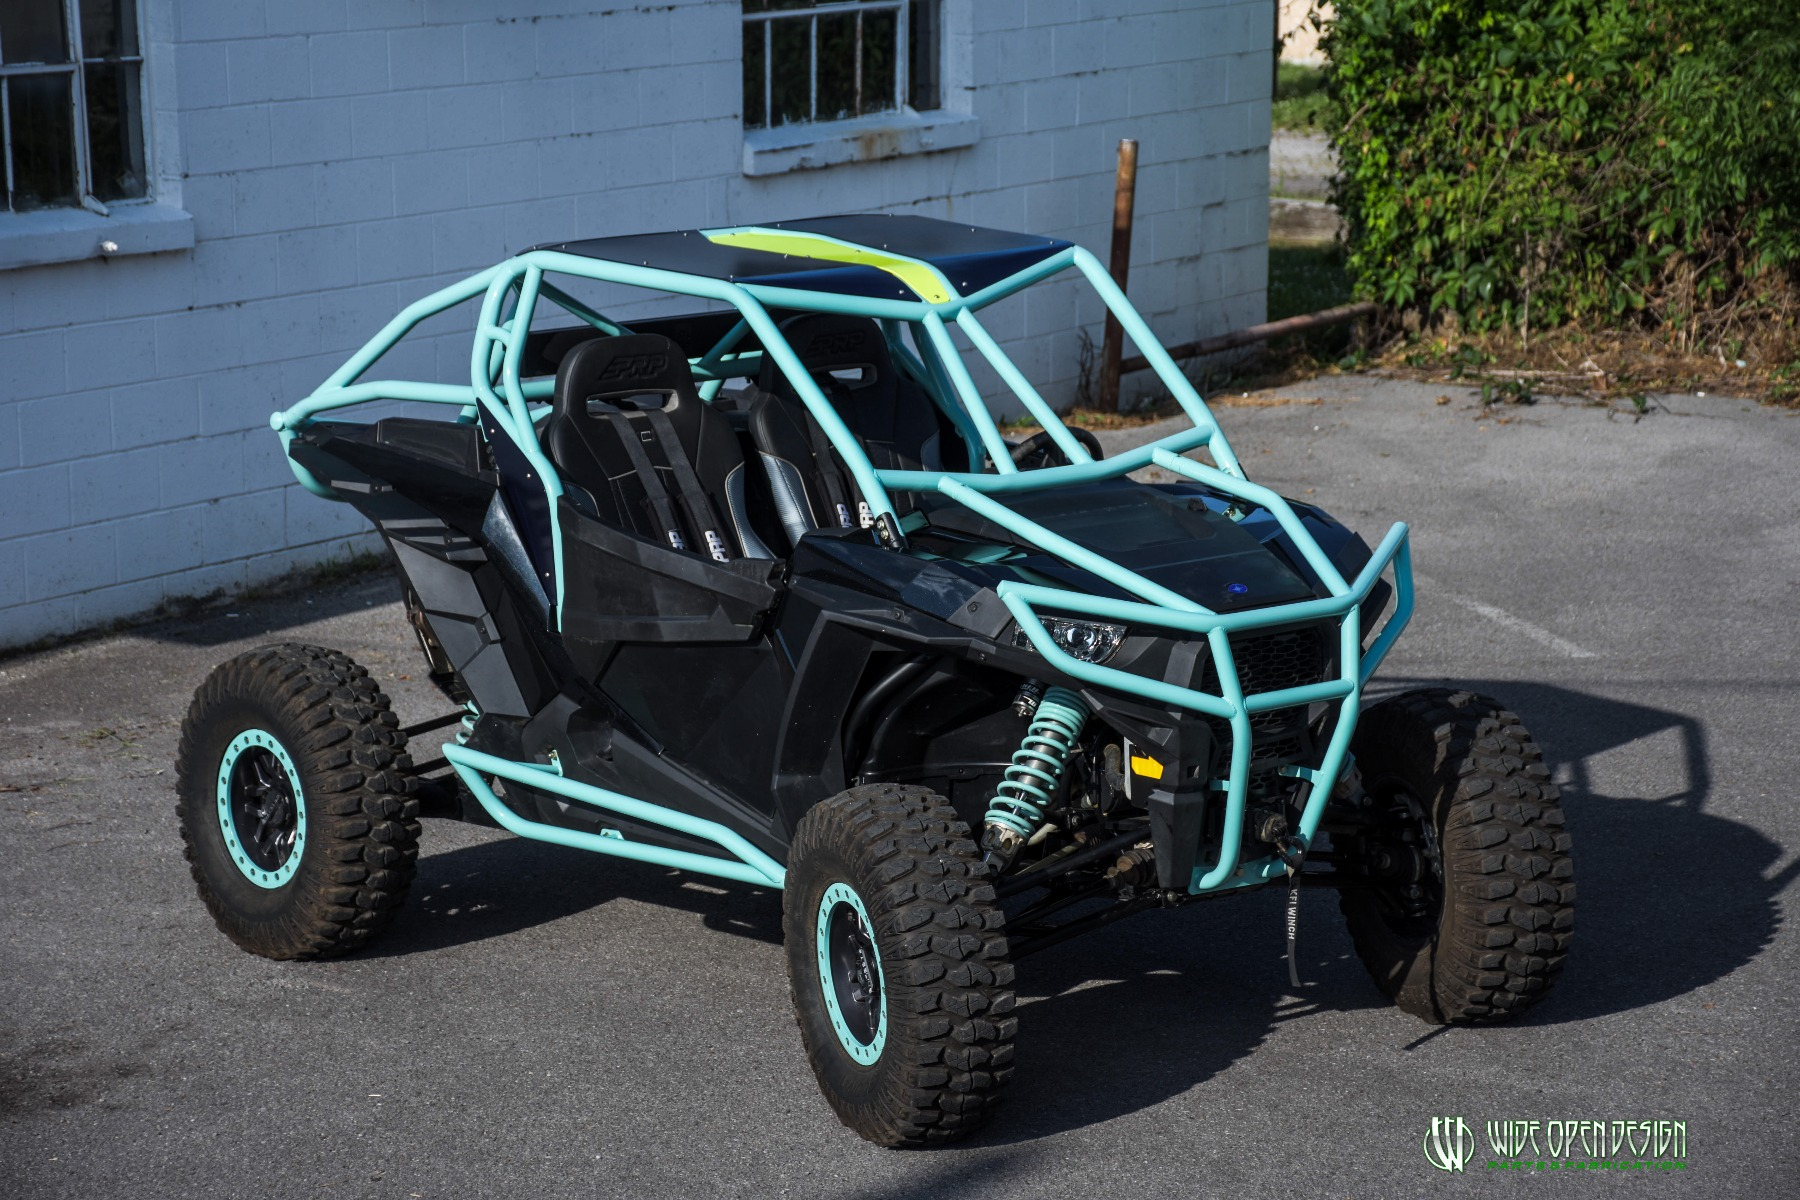 Wide Open Design UTV Cage RZR Cage Double Down featuring Double Pillars 21